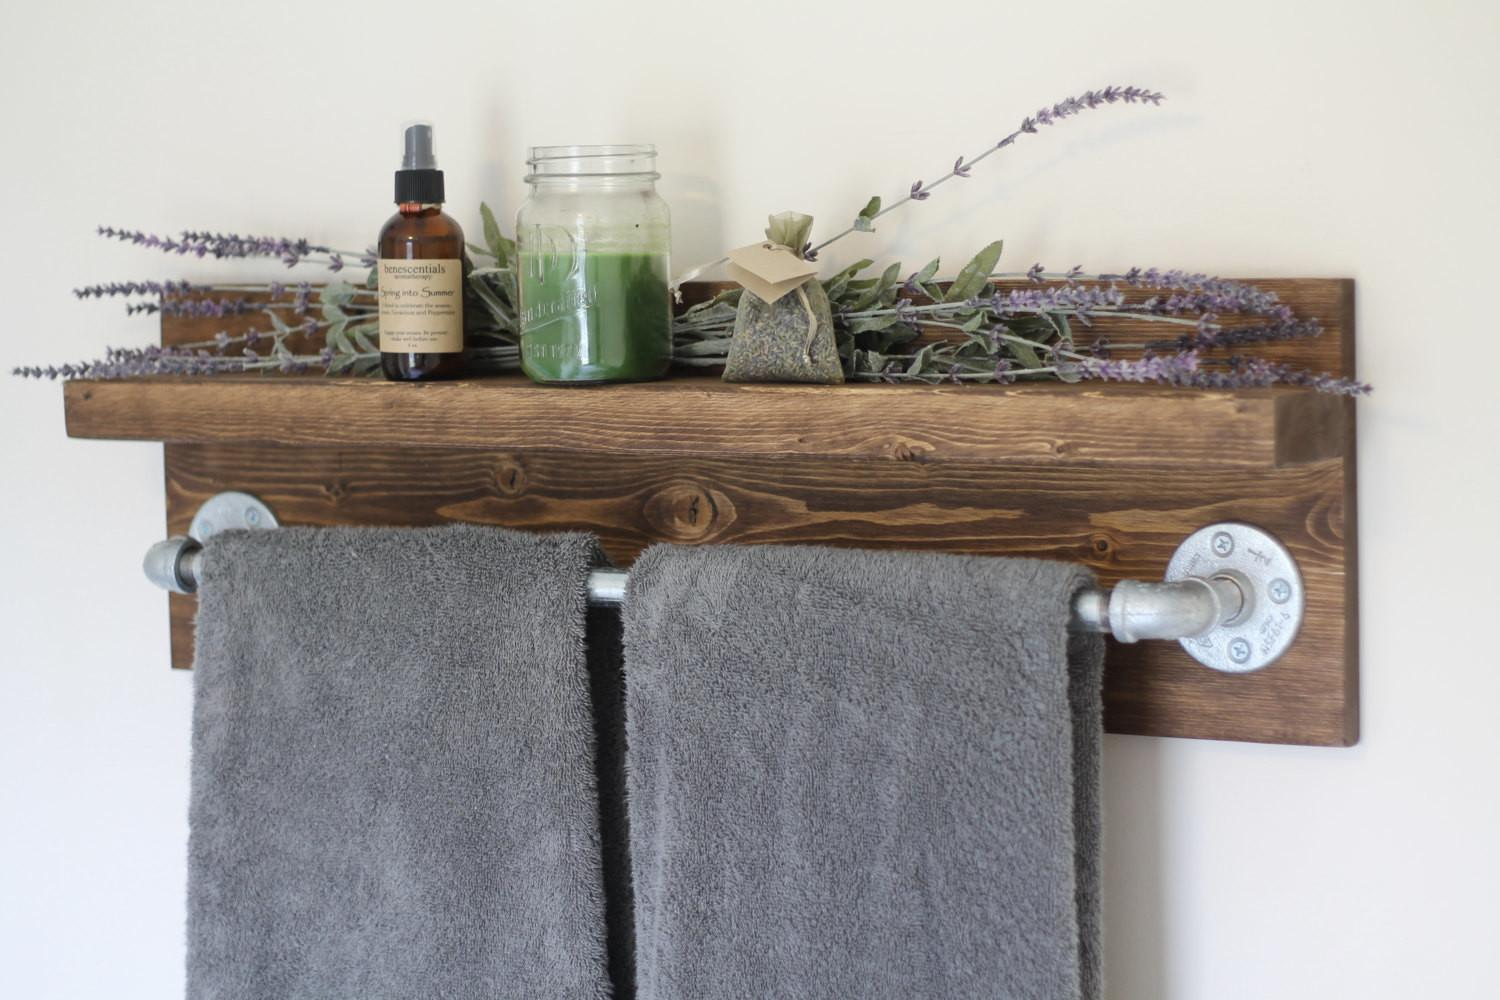 Decorative Bathroom Shelves Shelf